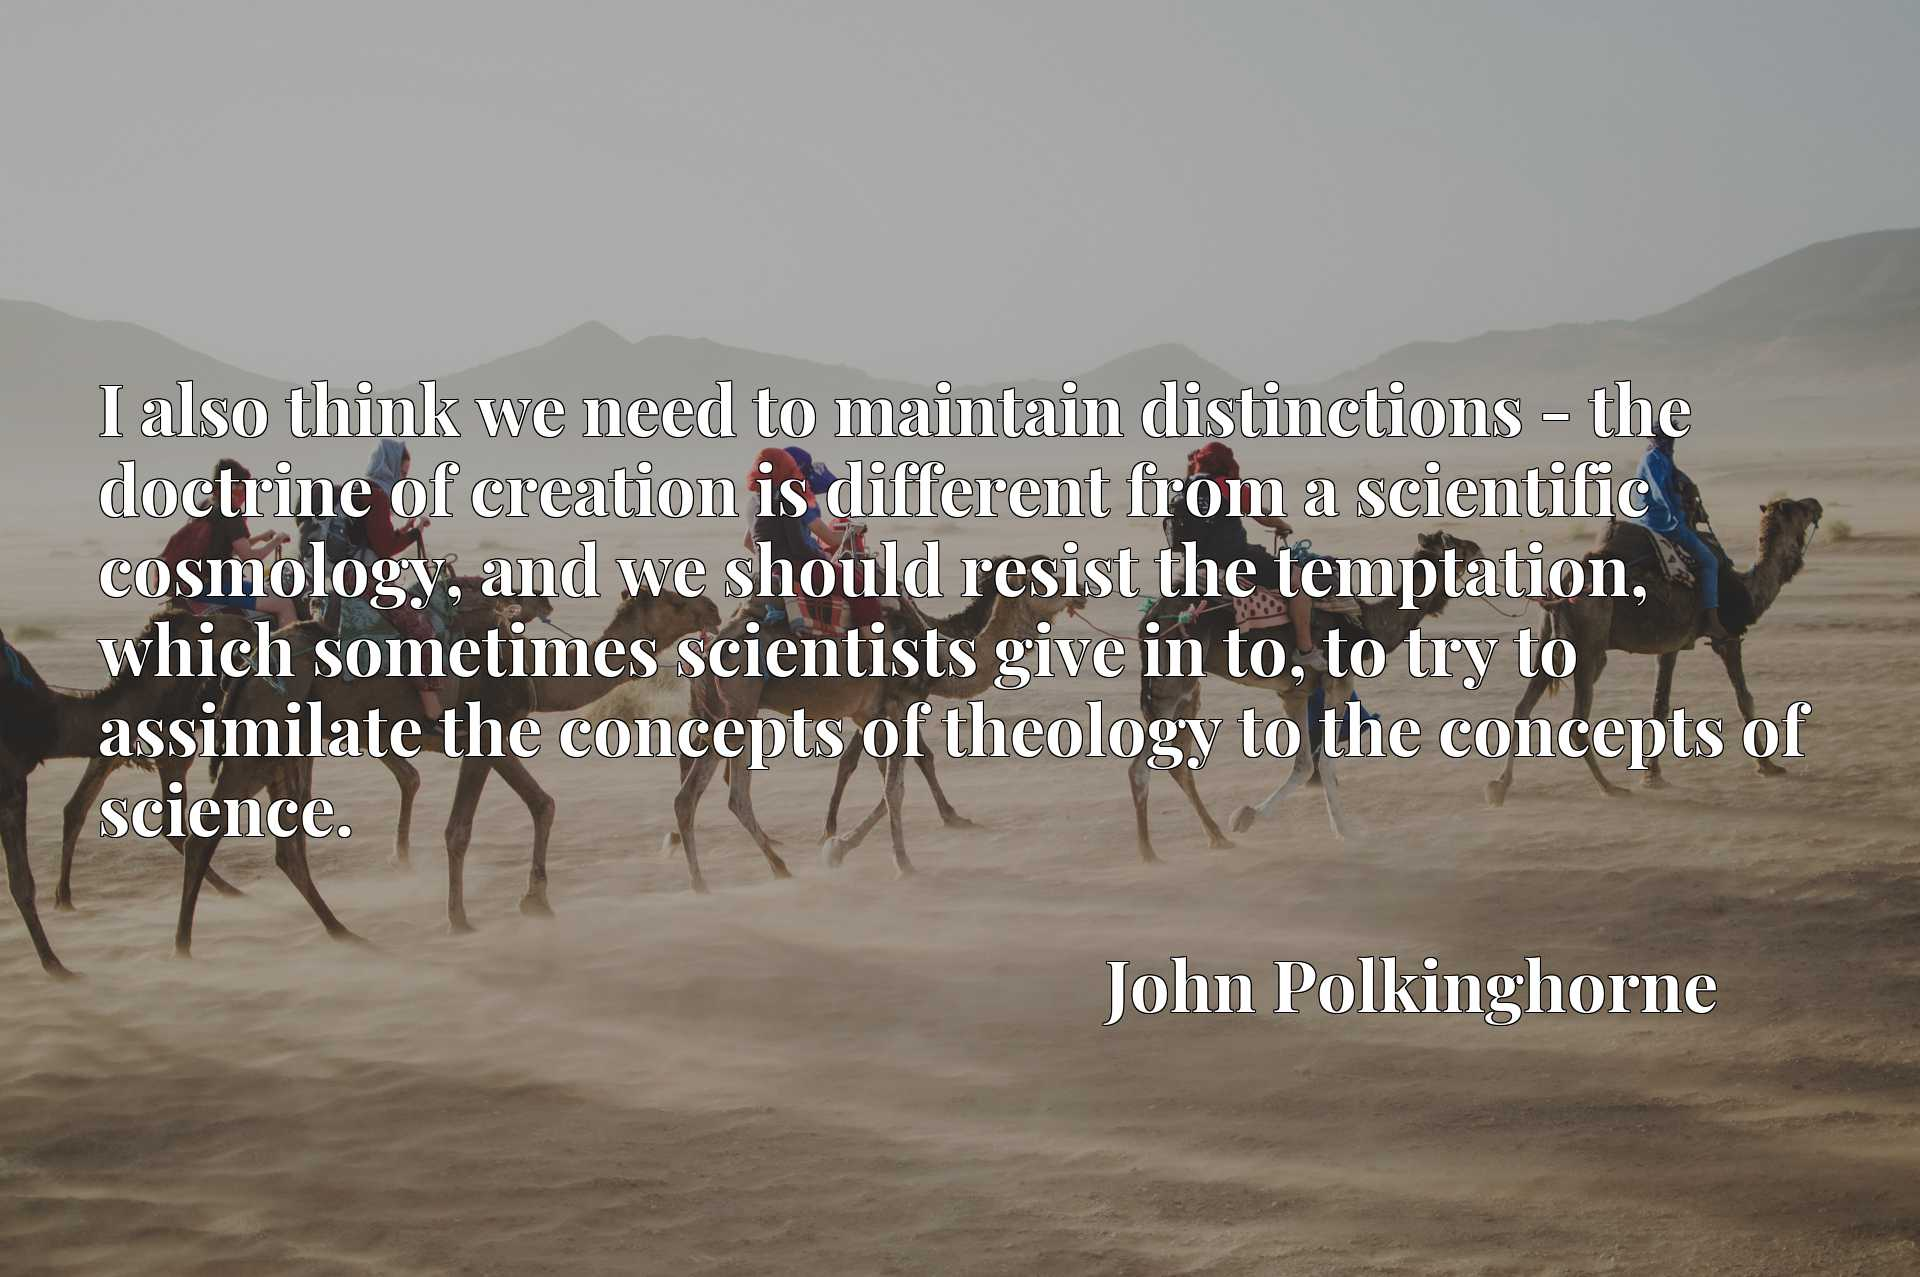 I also think we need to maintain distinctions - the doctrine of creation is different from a scientific cosmology, and we should resist the temptation, which sometimes scientists give in to, to try to assimilate the concepts of theology to the concepts of science.